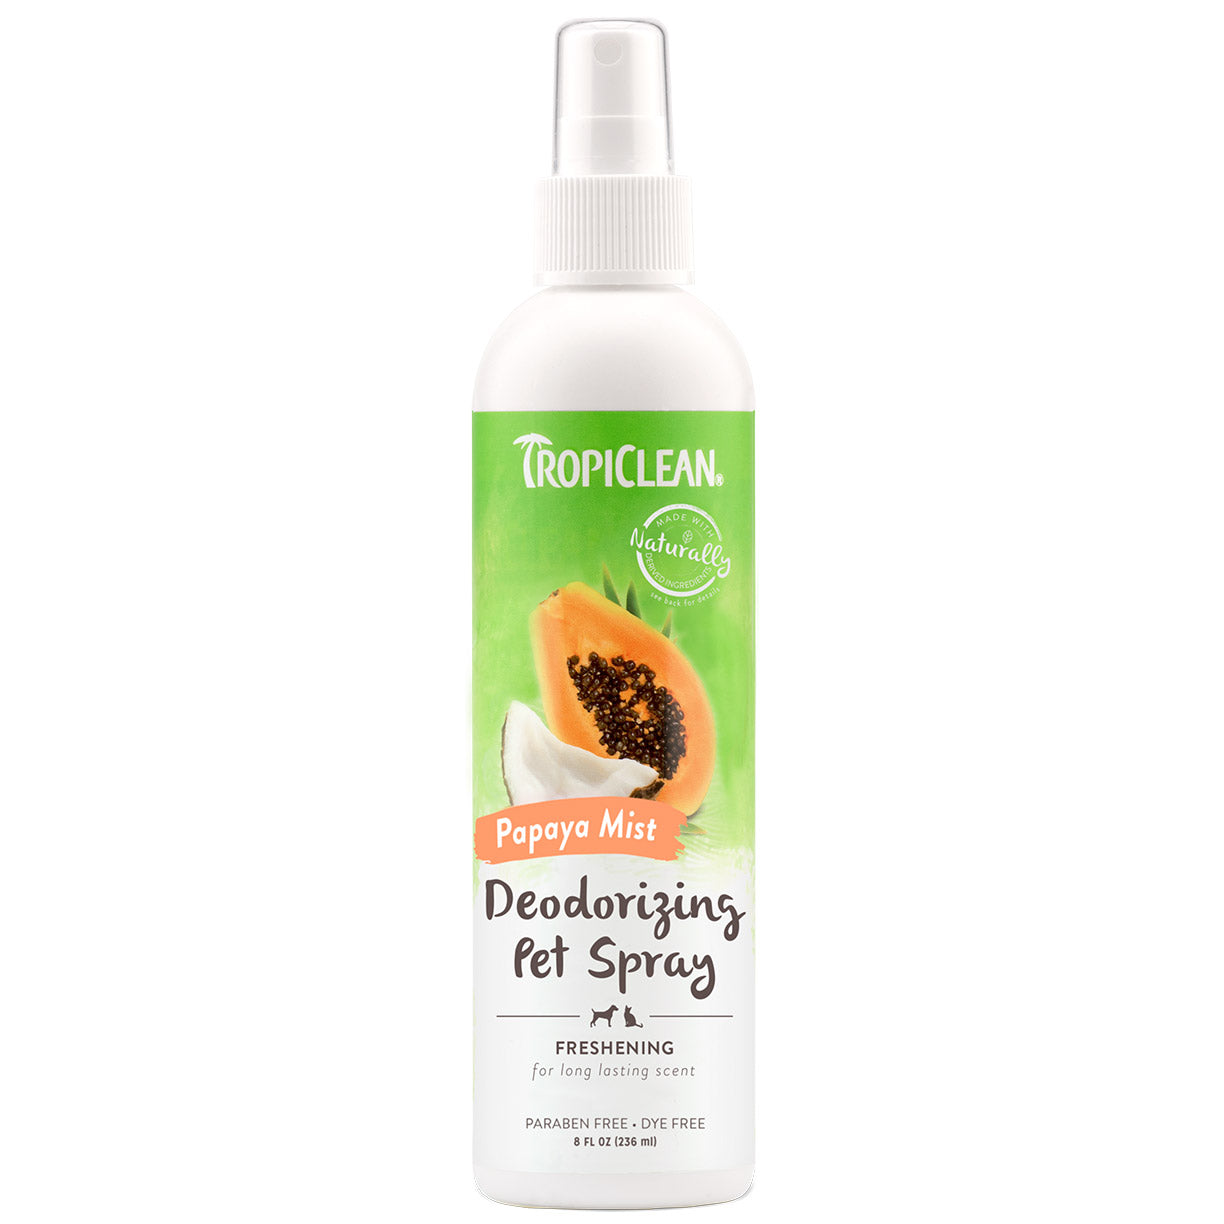 Tropiclean Papaya Mist Deodorizing Pet Spray